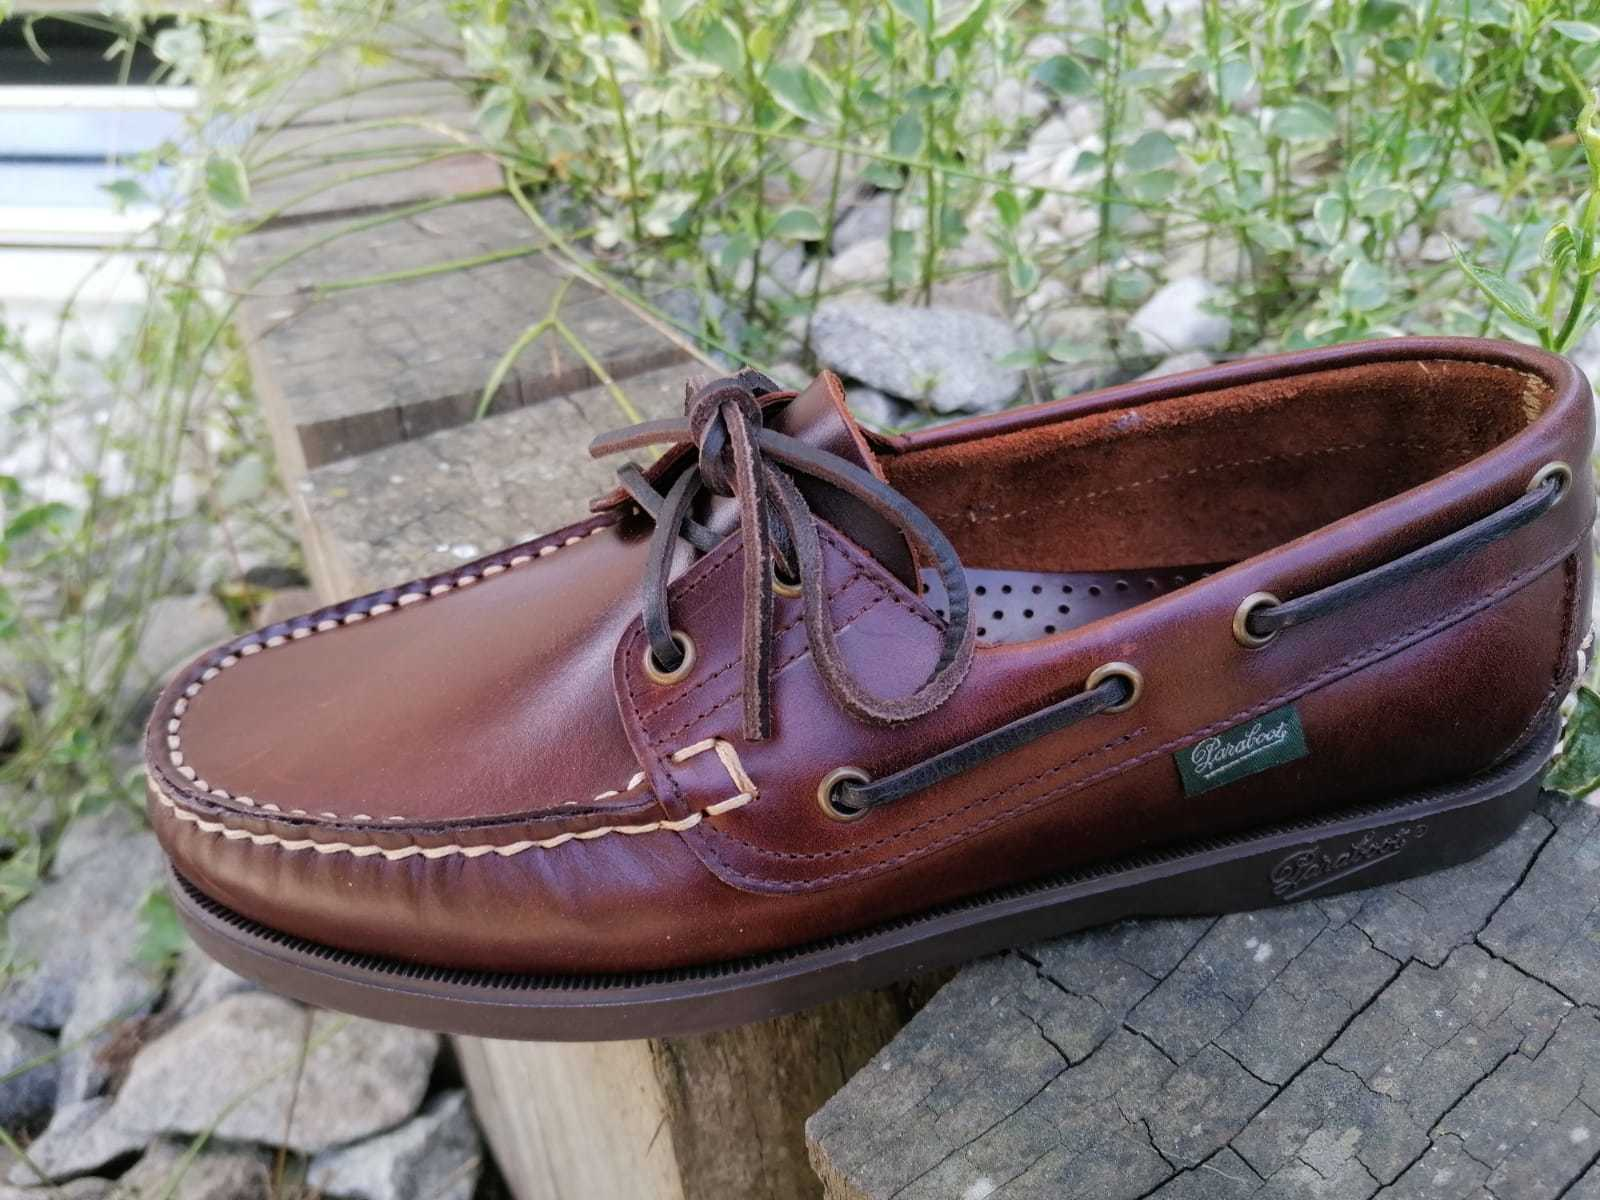 Galerie d'image - Chaussures HAAS